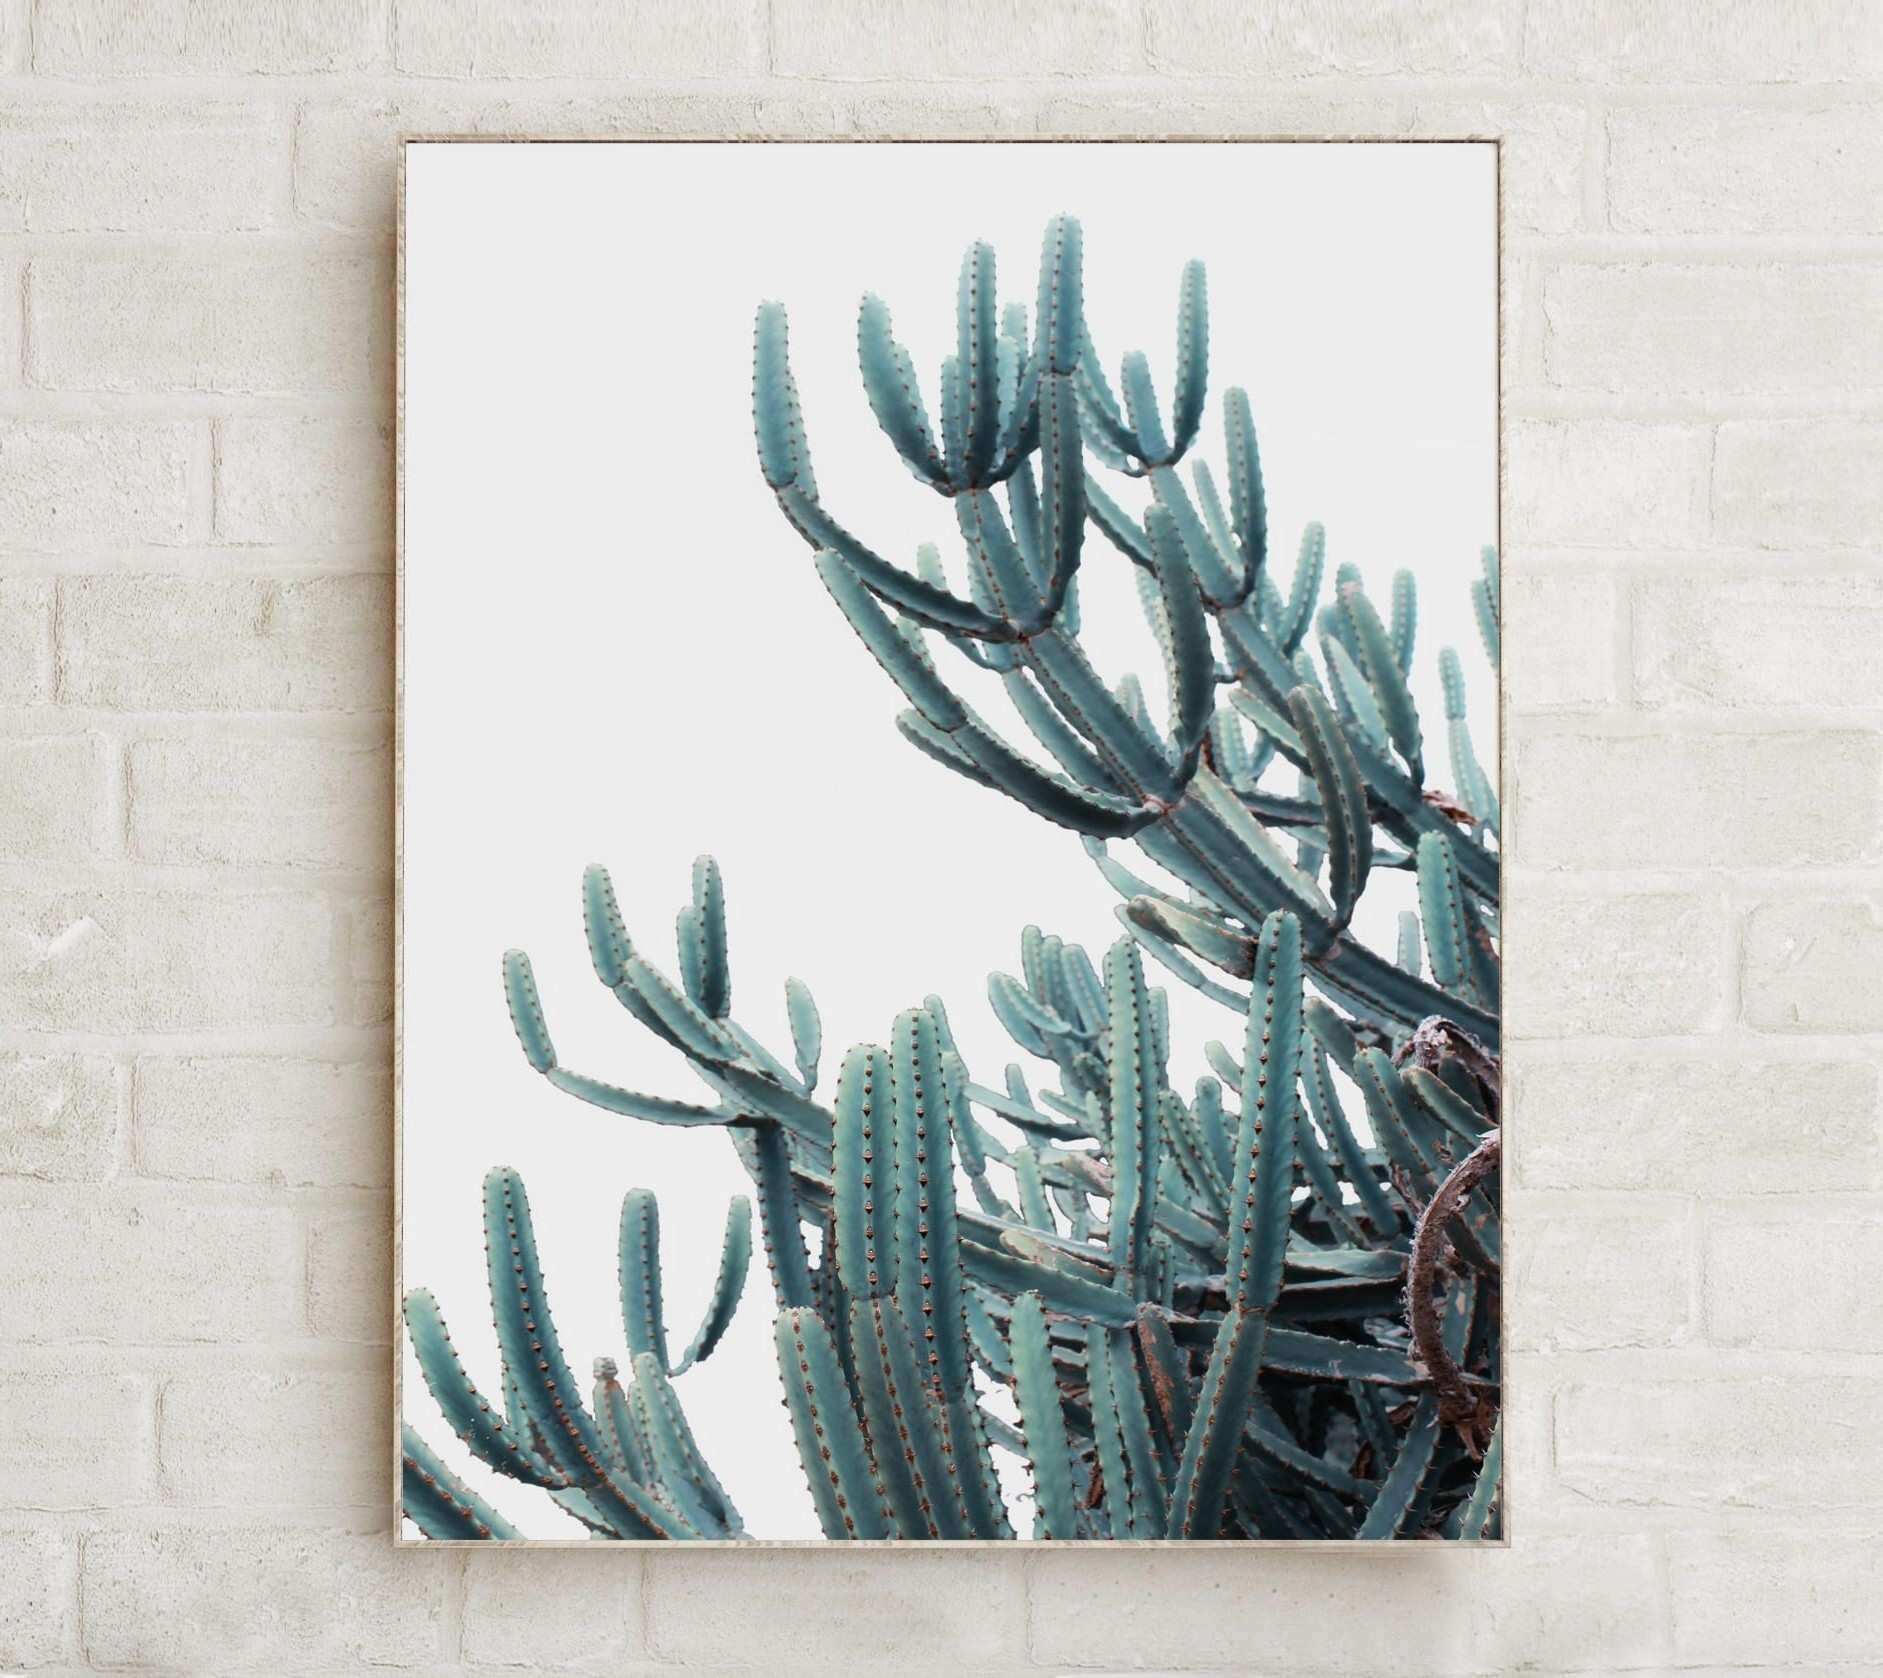 Etsy Wall Art Prints Luxury S Of Botanical Prints Etsy Showing 4 Of 15 S